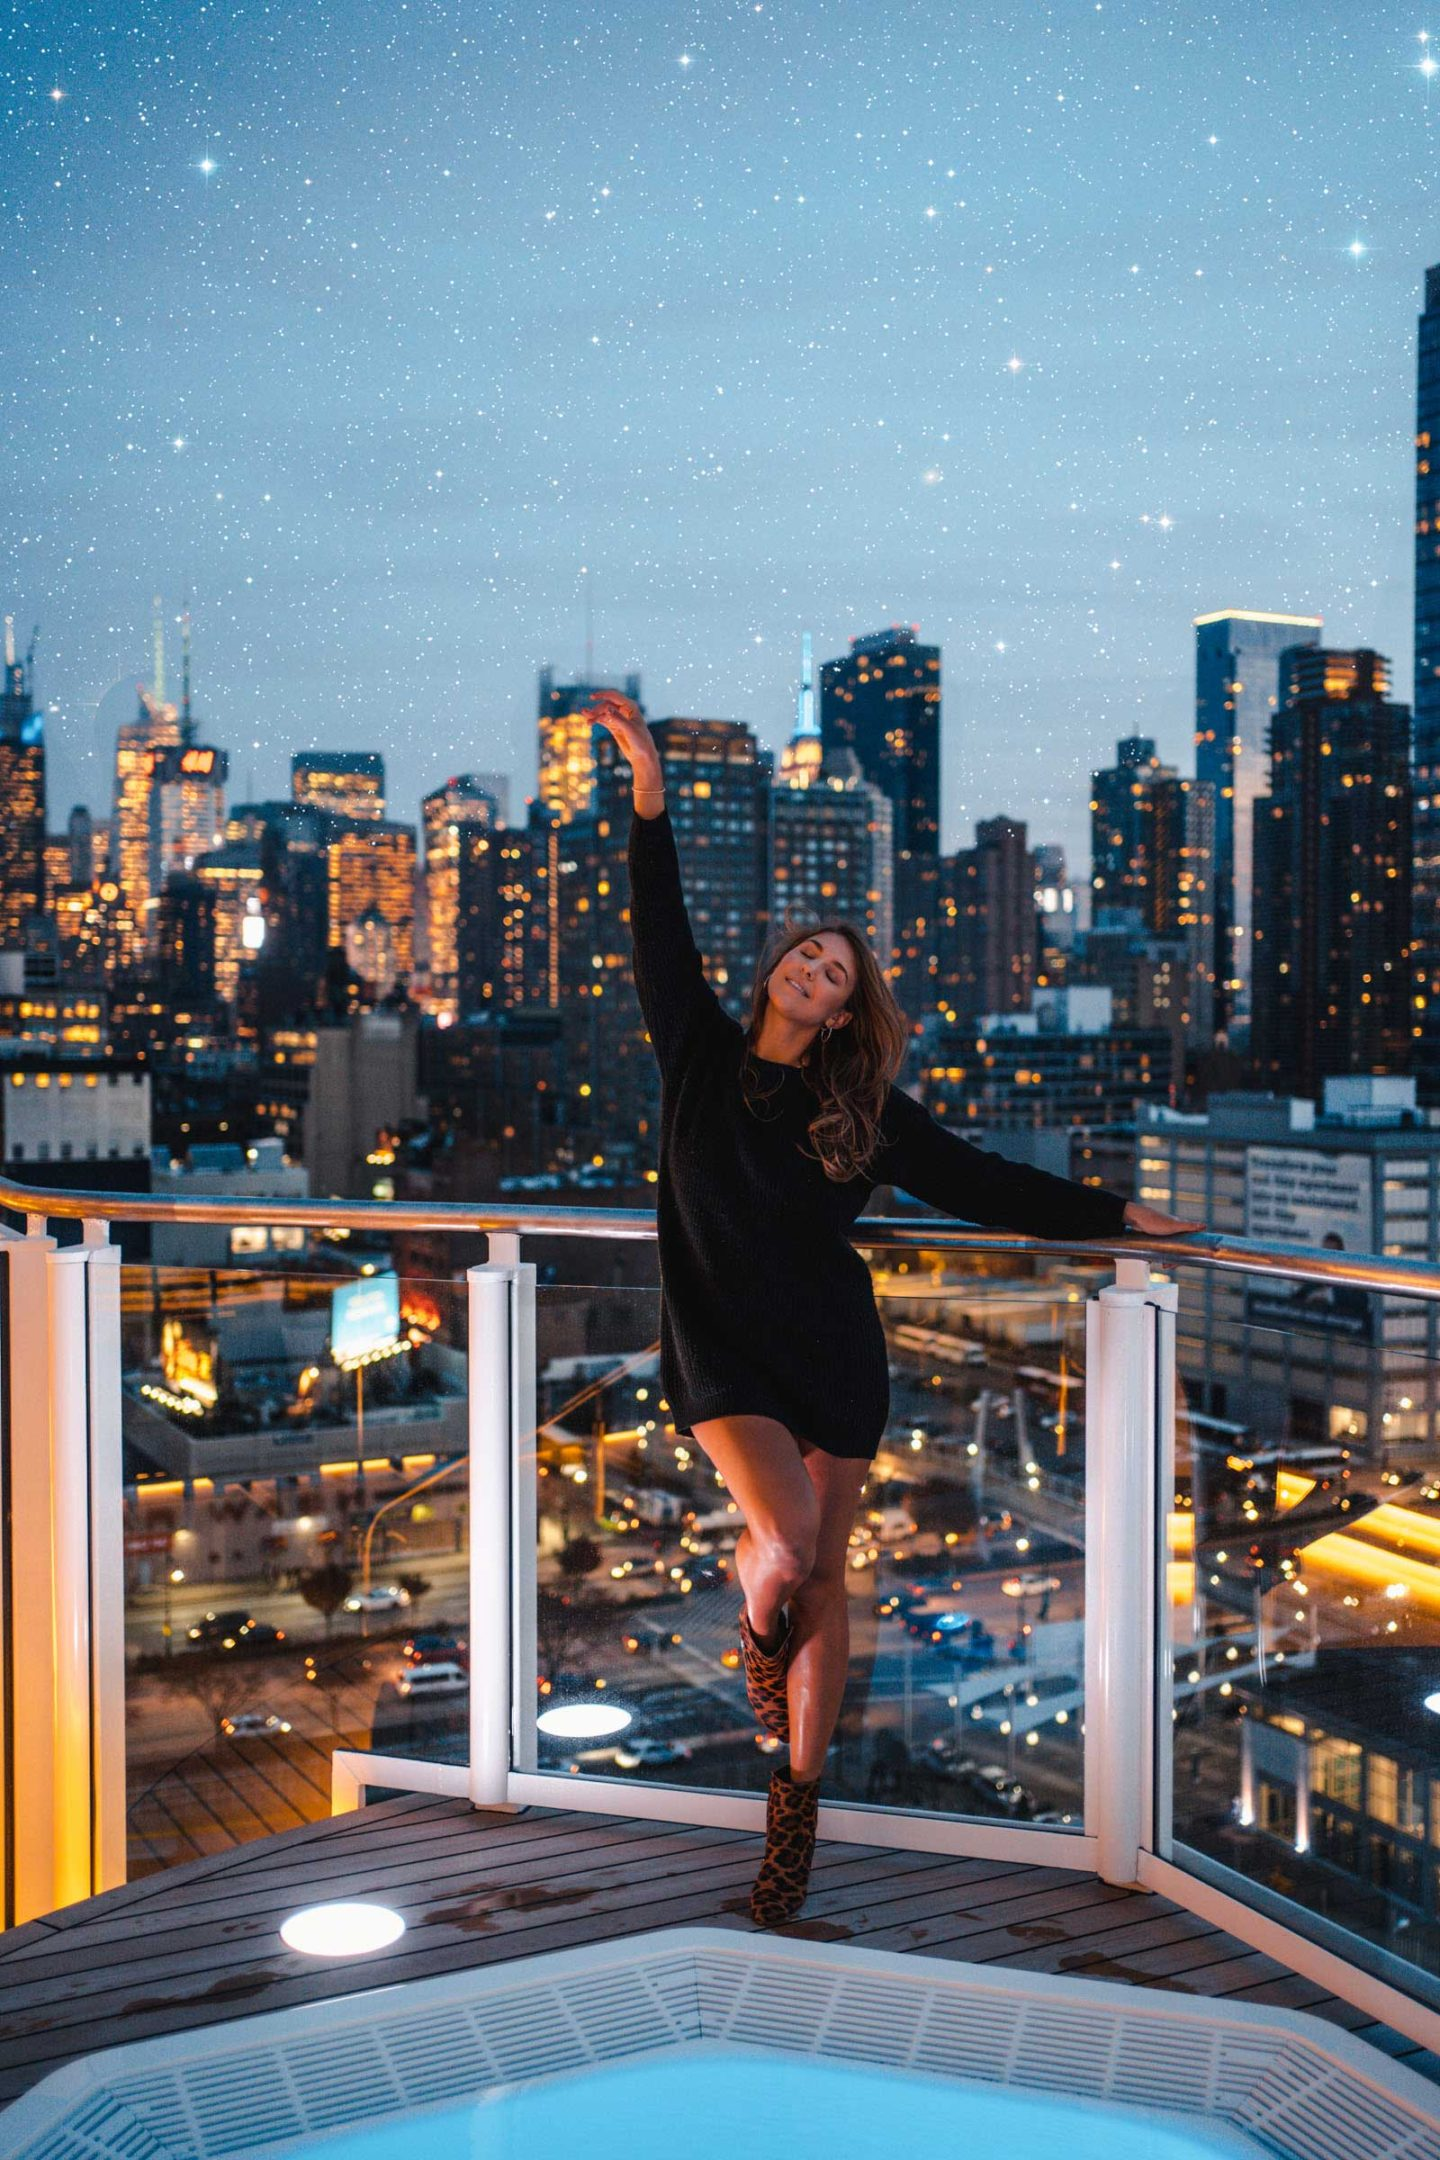 In this easy photoshop tutorial, I will show you how to add Stars fast in Photoshop in under 5 simple steps! Perfect for adding stars to your Instagram photos quick and easy. Photoshop tutorial for beginners. New York City night photography